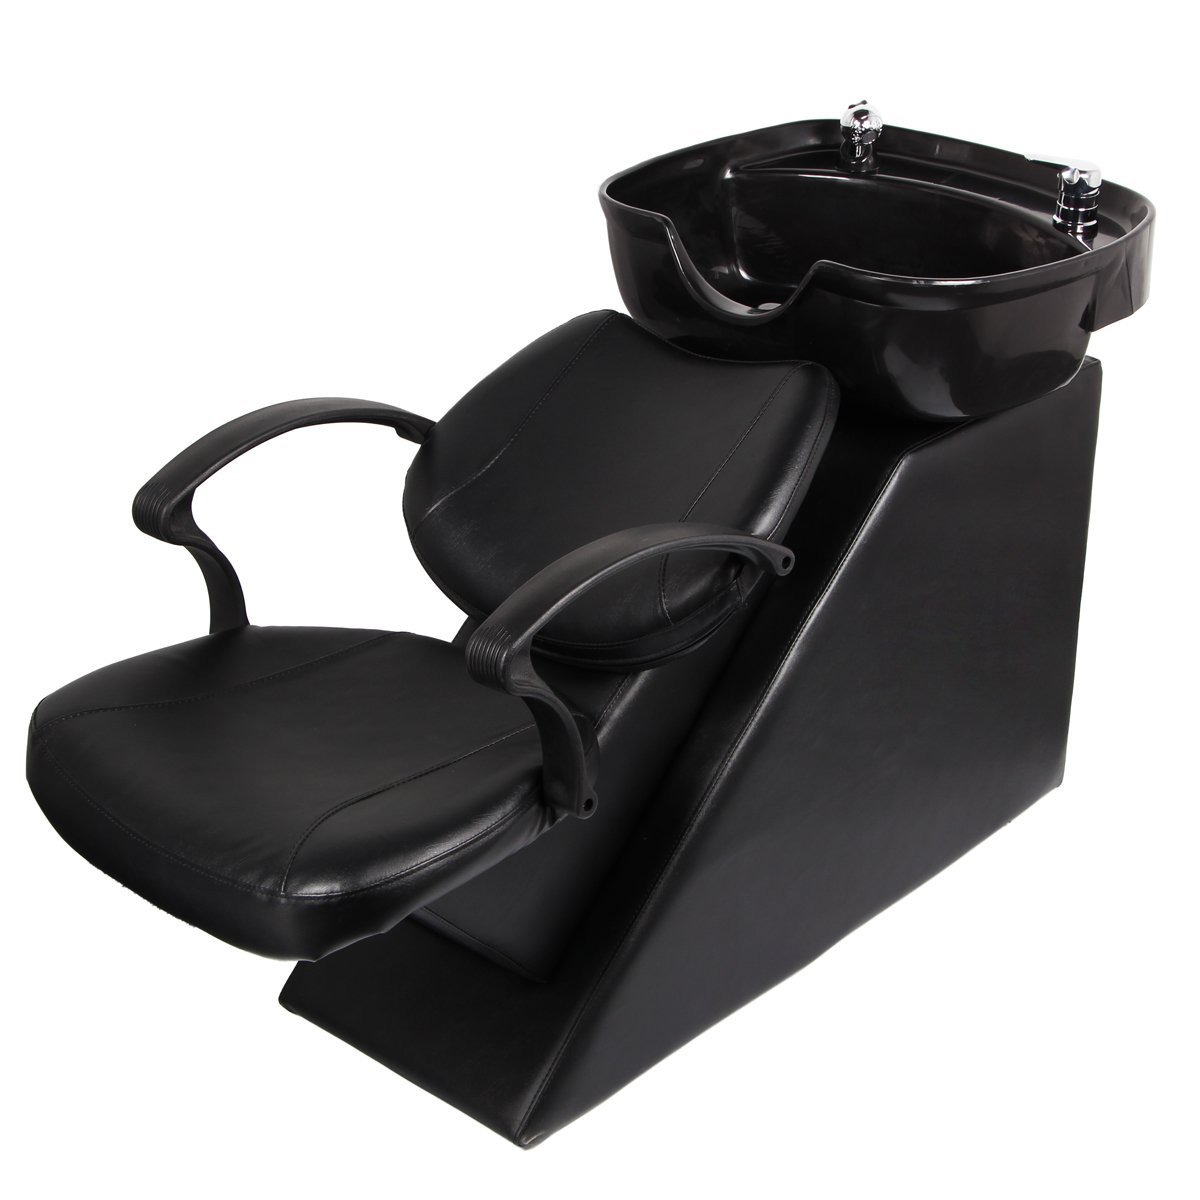 Salon Shampoo Chairs Top 10 Best Salon Shampoo Chairs You Can Buy Right Now